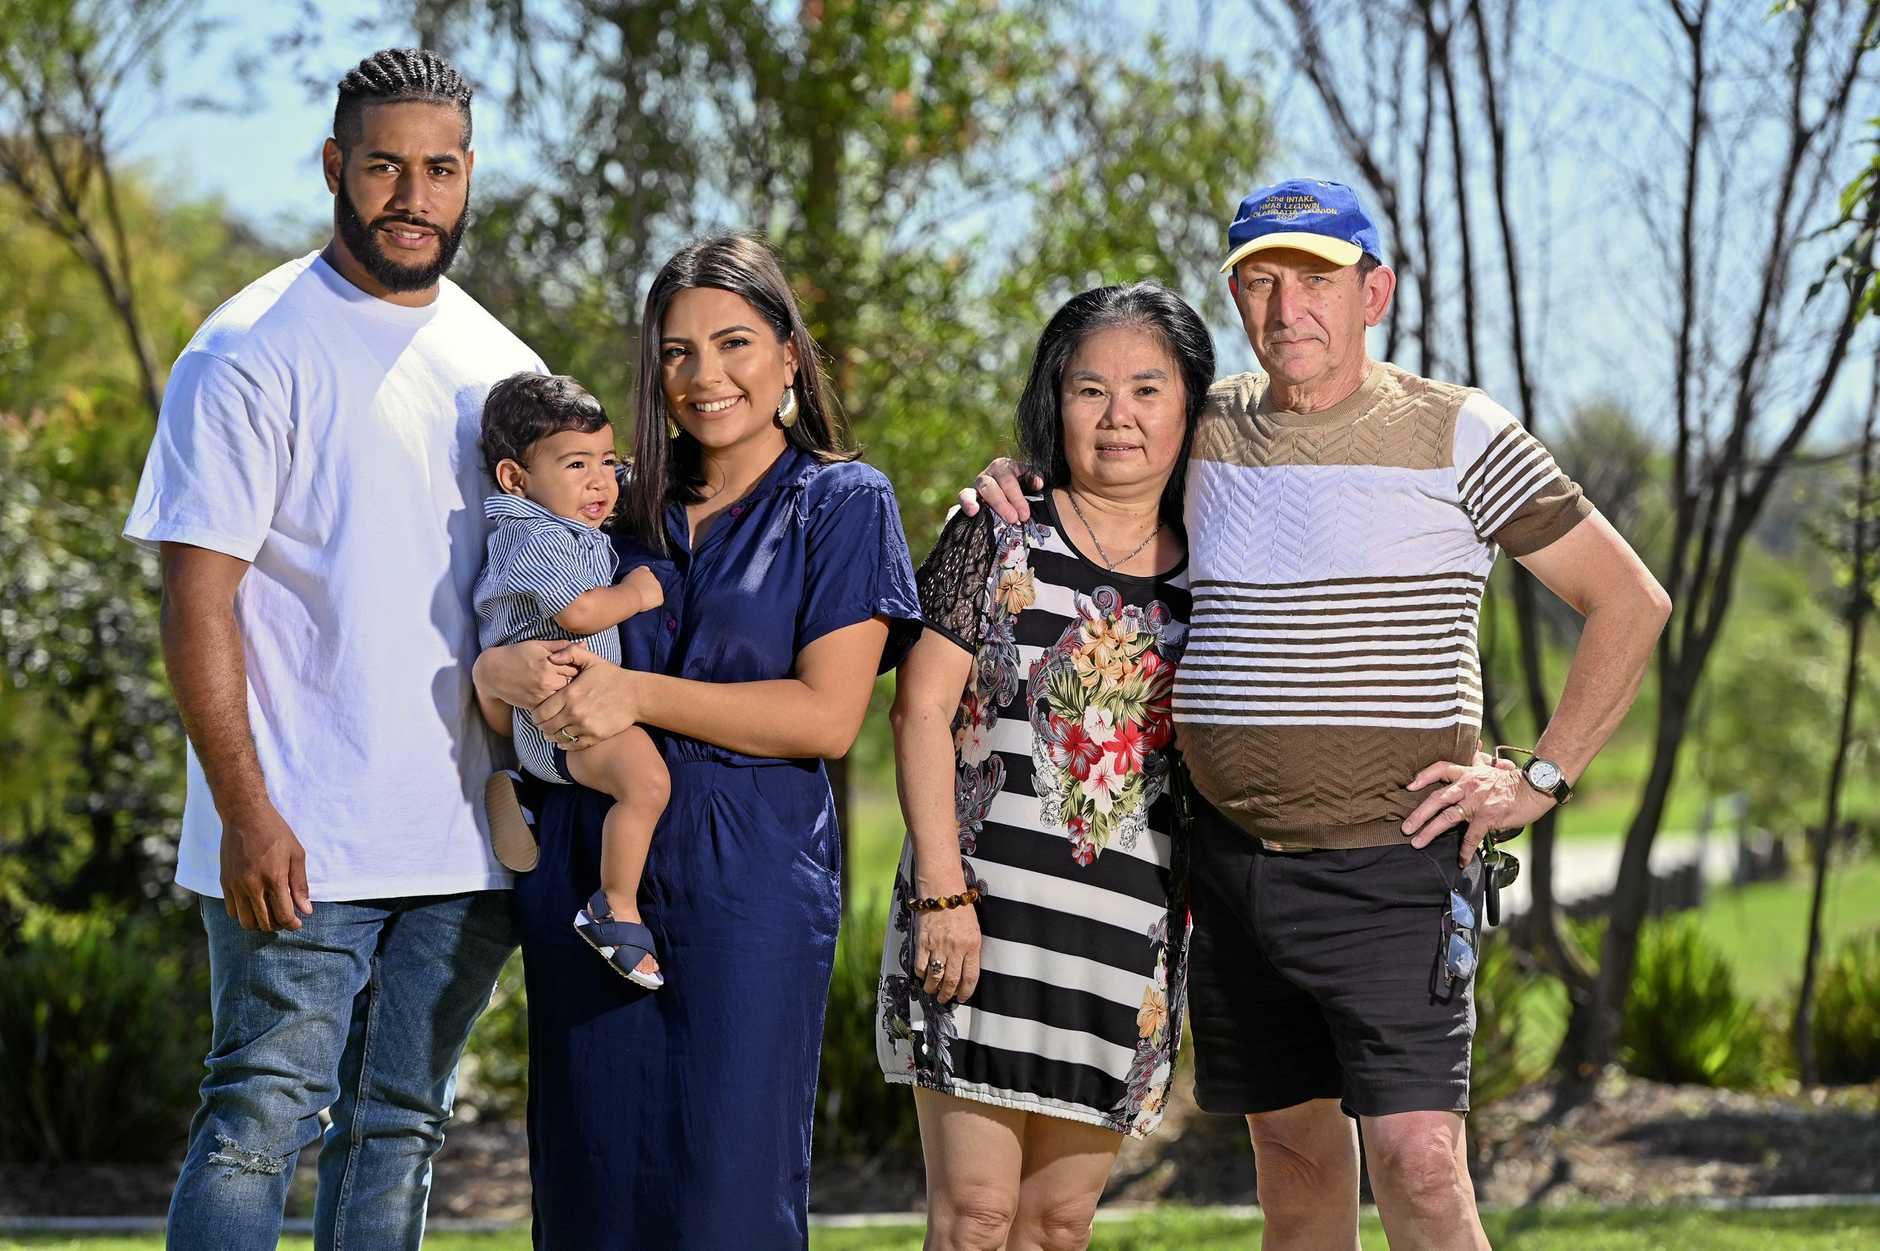 Aaron and Francisca Nemani with their 9 month old son Zion alongside Xiallei Wang and Stephen Threlfall at Providence in Ripley.